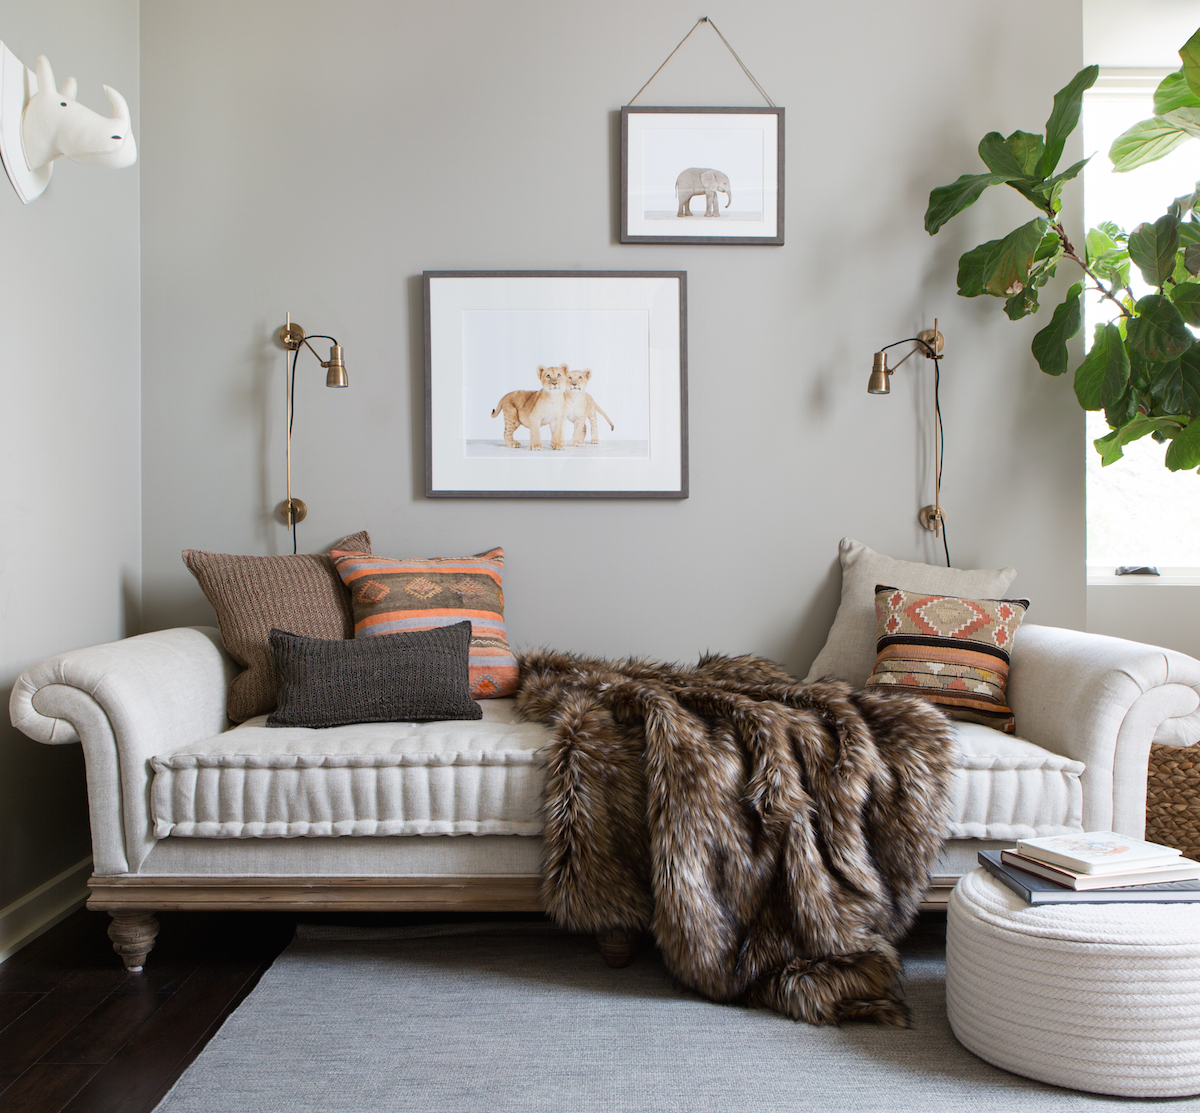 Nursery daybed from Restoration Hardware